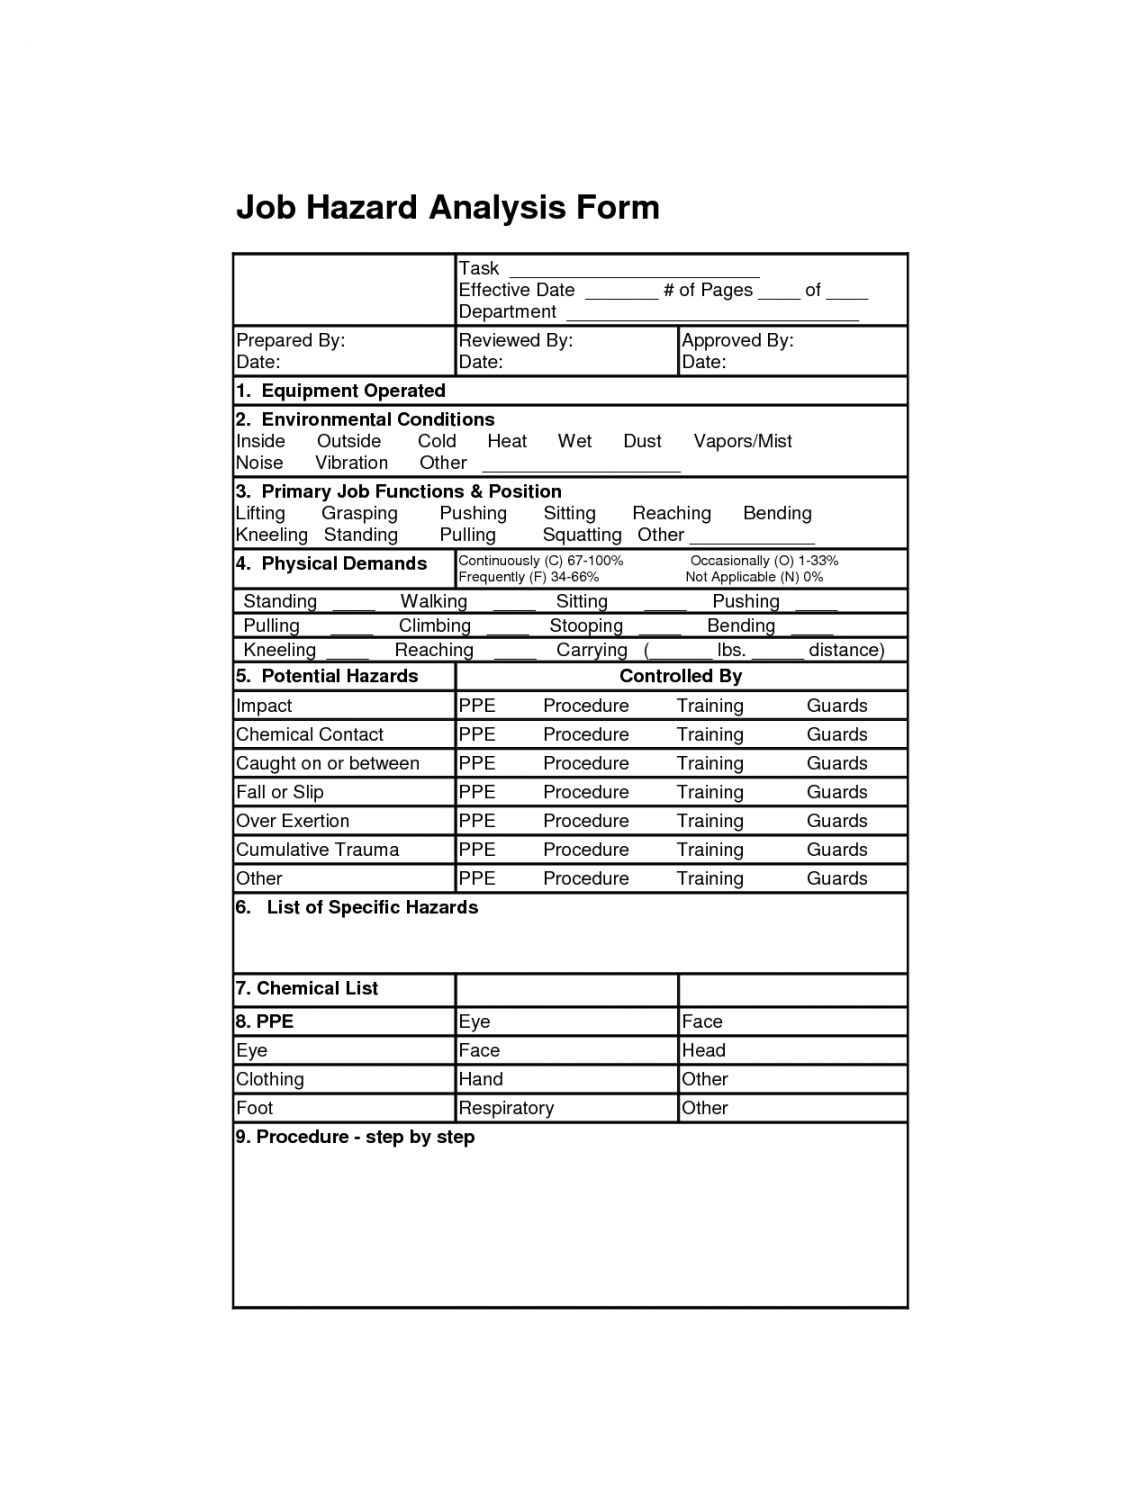 Free Job Hazard Analysis Form Job Analysis Forms Job Analysis Site Safety Analysis Report Template Sample Job Analysis Report Template Templates